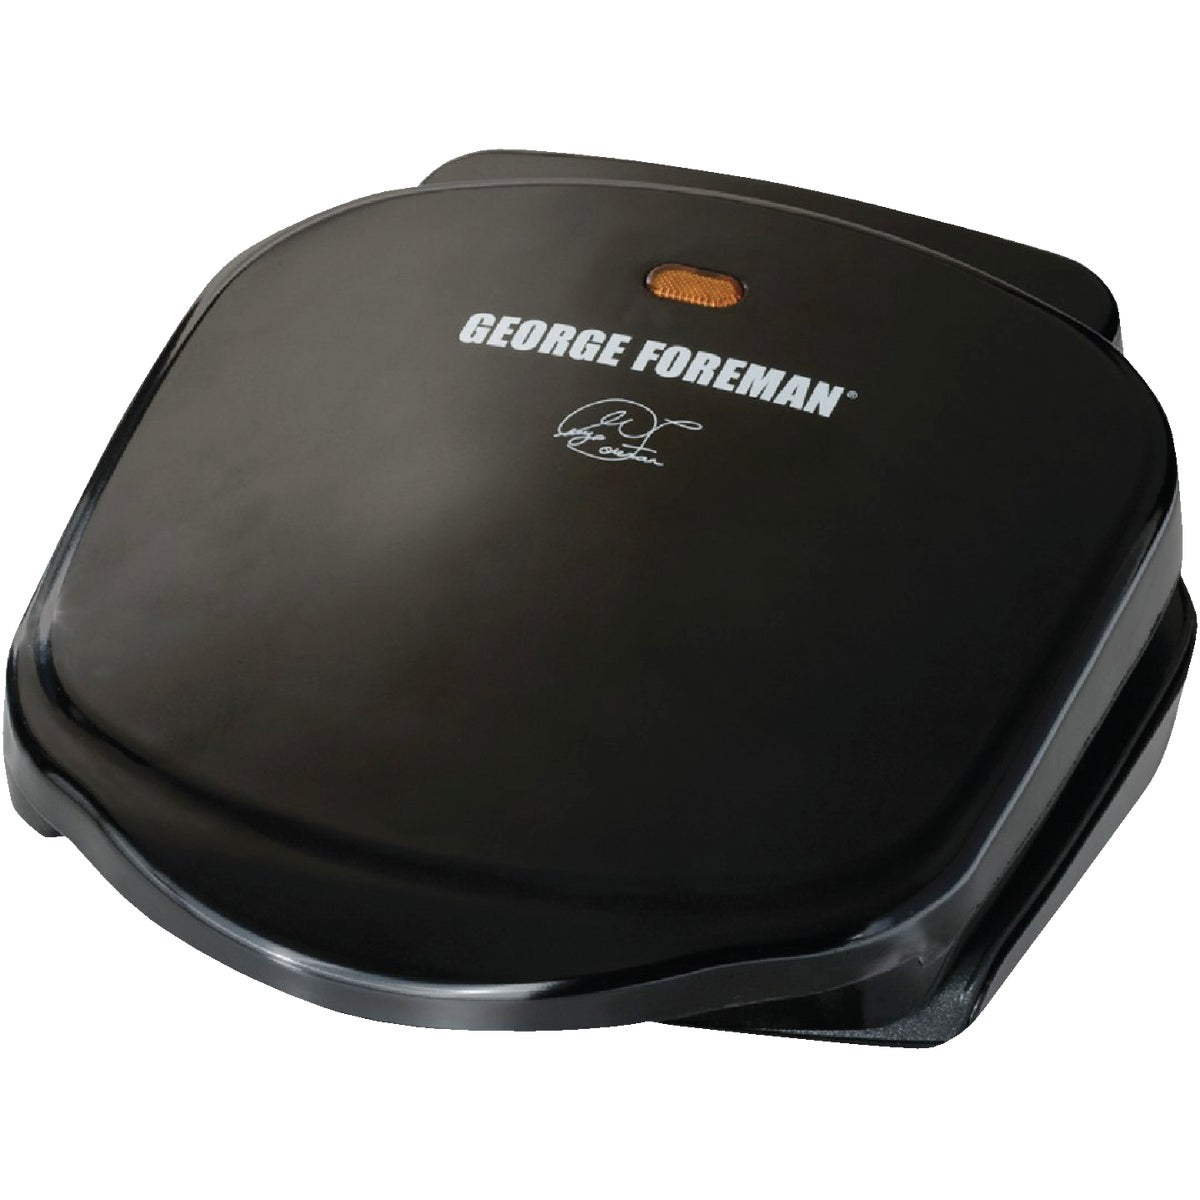 2 SERVING FOREMAN GRILL - GR10B by Applia      Spectrum